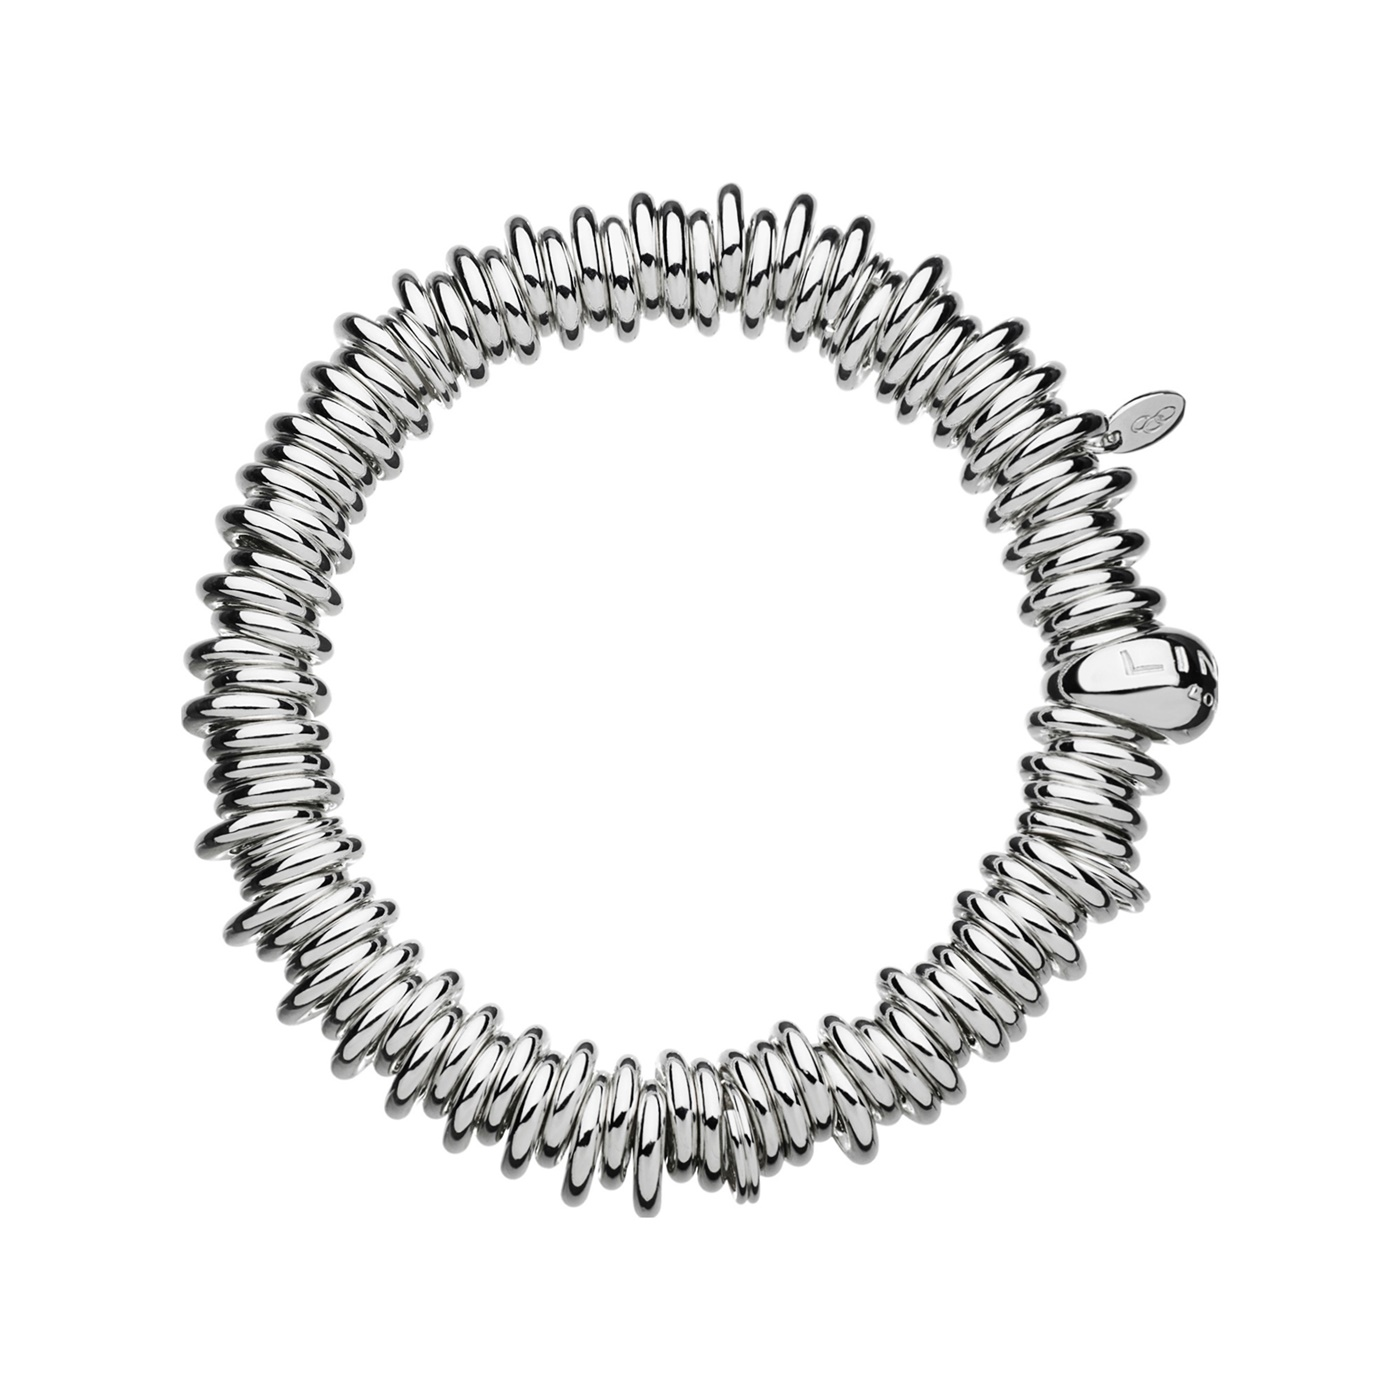 With an undeniably iconic status and stores all over the world, Links of London is a highly esteemed jewellery and watch brand that boasts quirky British flair, uncompromising craftsmanship, premium materials, and imaginative designs.